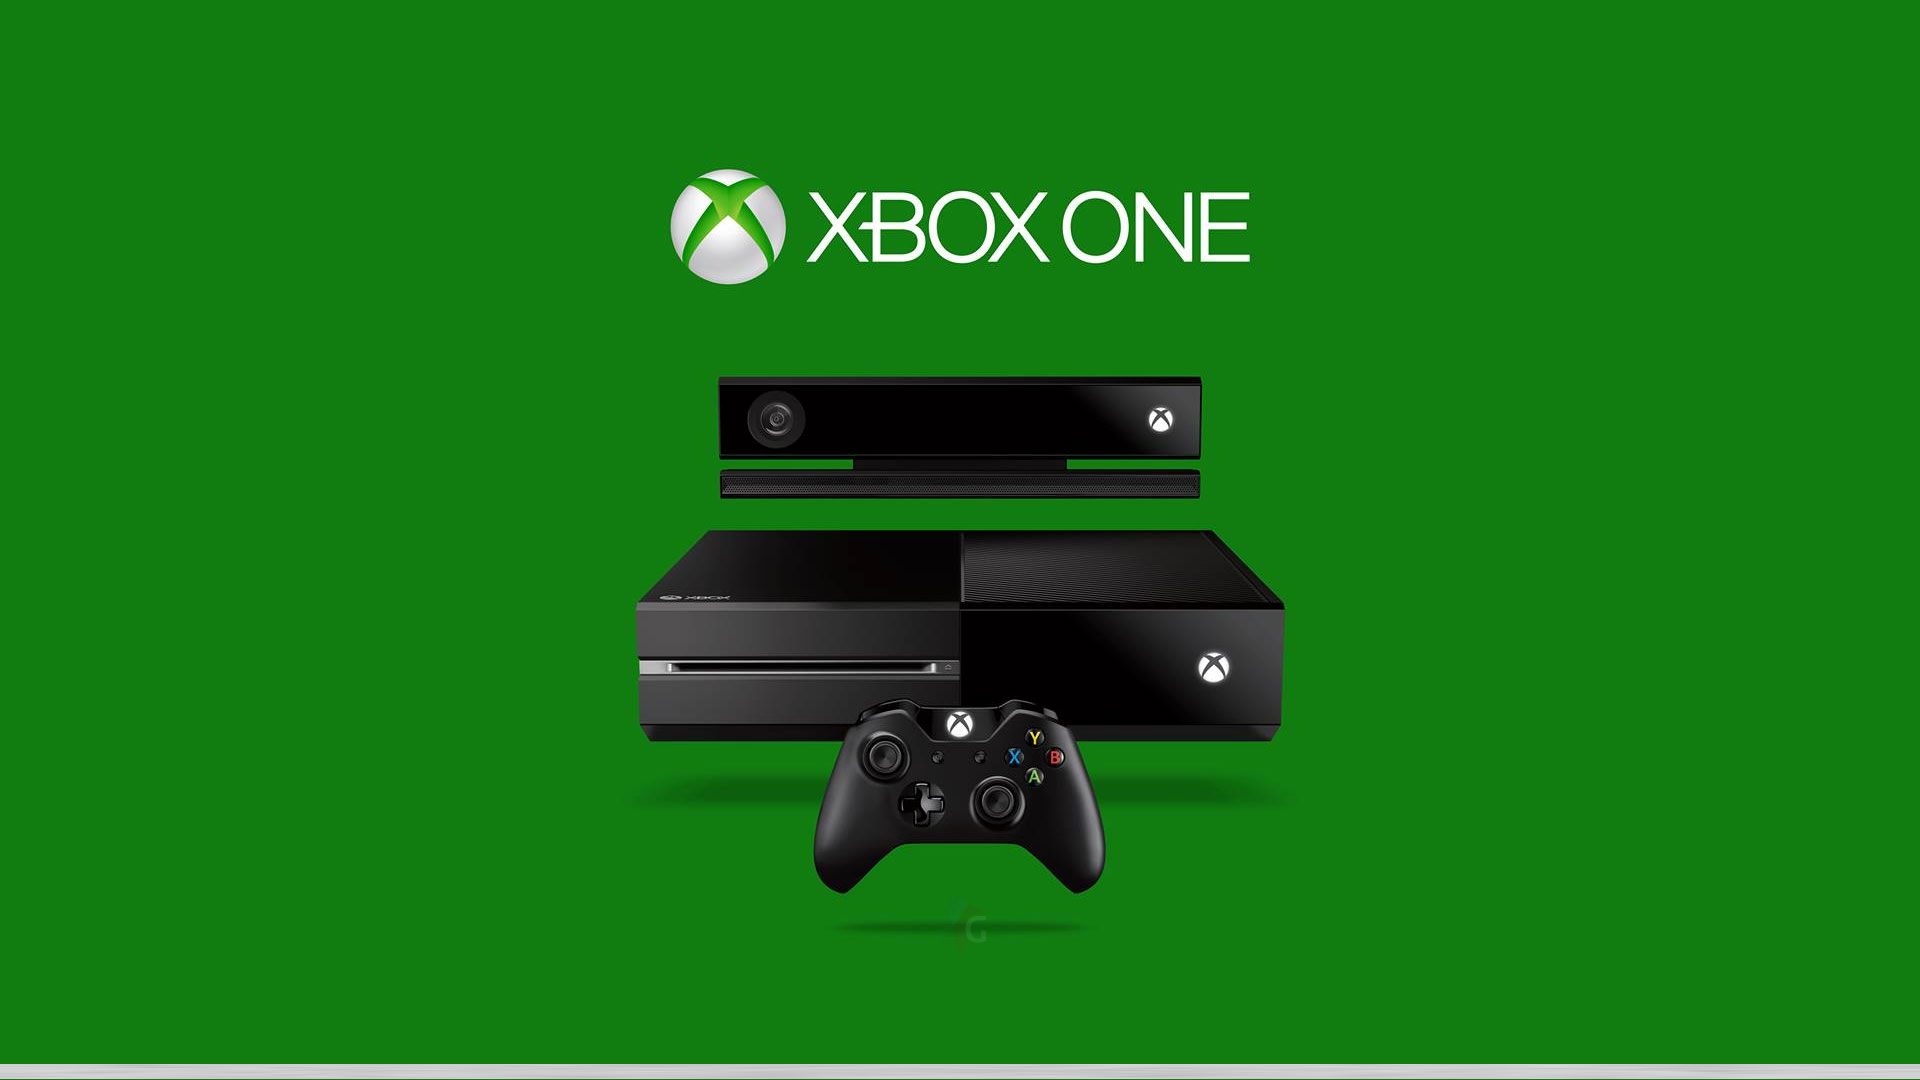 microsoft planning a new design for the xbox one